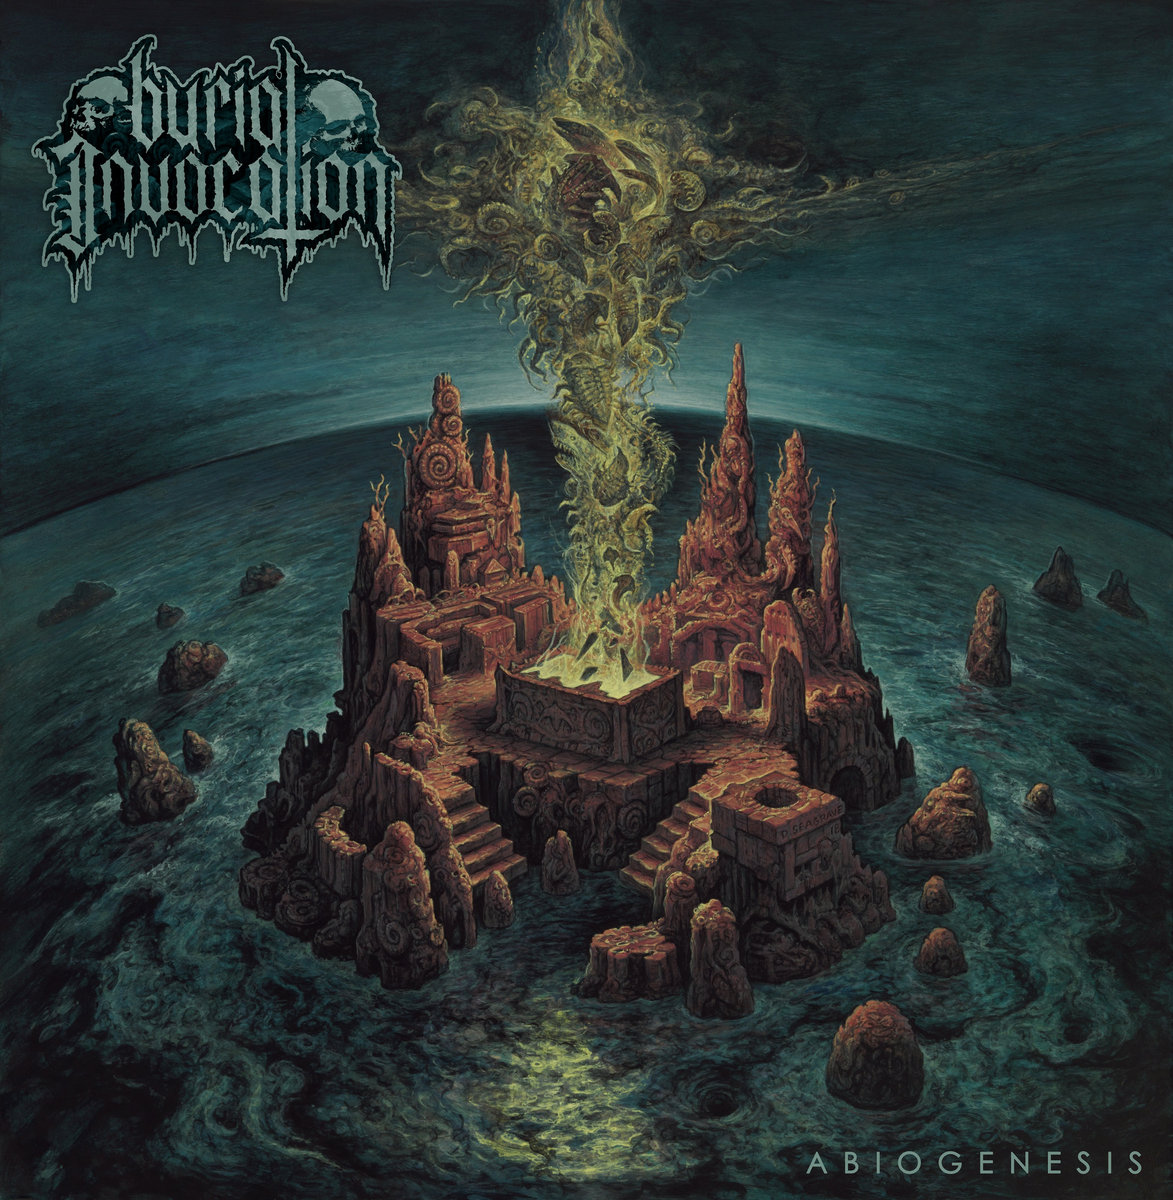 8. Burial Invocation - Abiogenesis - Abiogenesis came out of nowhere! The debut album from Burial Invocation (of Ankara, Turkey) is an exemplary display of ominous, murky, old-school death metal. This album invokes the spirit of Demilich, Nocturnus, early Immolation, and Dimembered amongst others, and perfectly straddles the line between Floridian brutality and Swedish creativity.